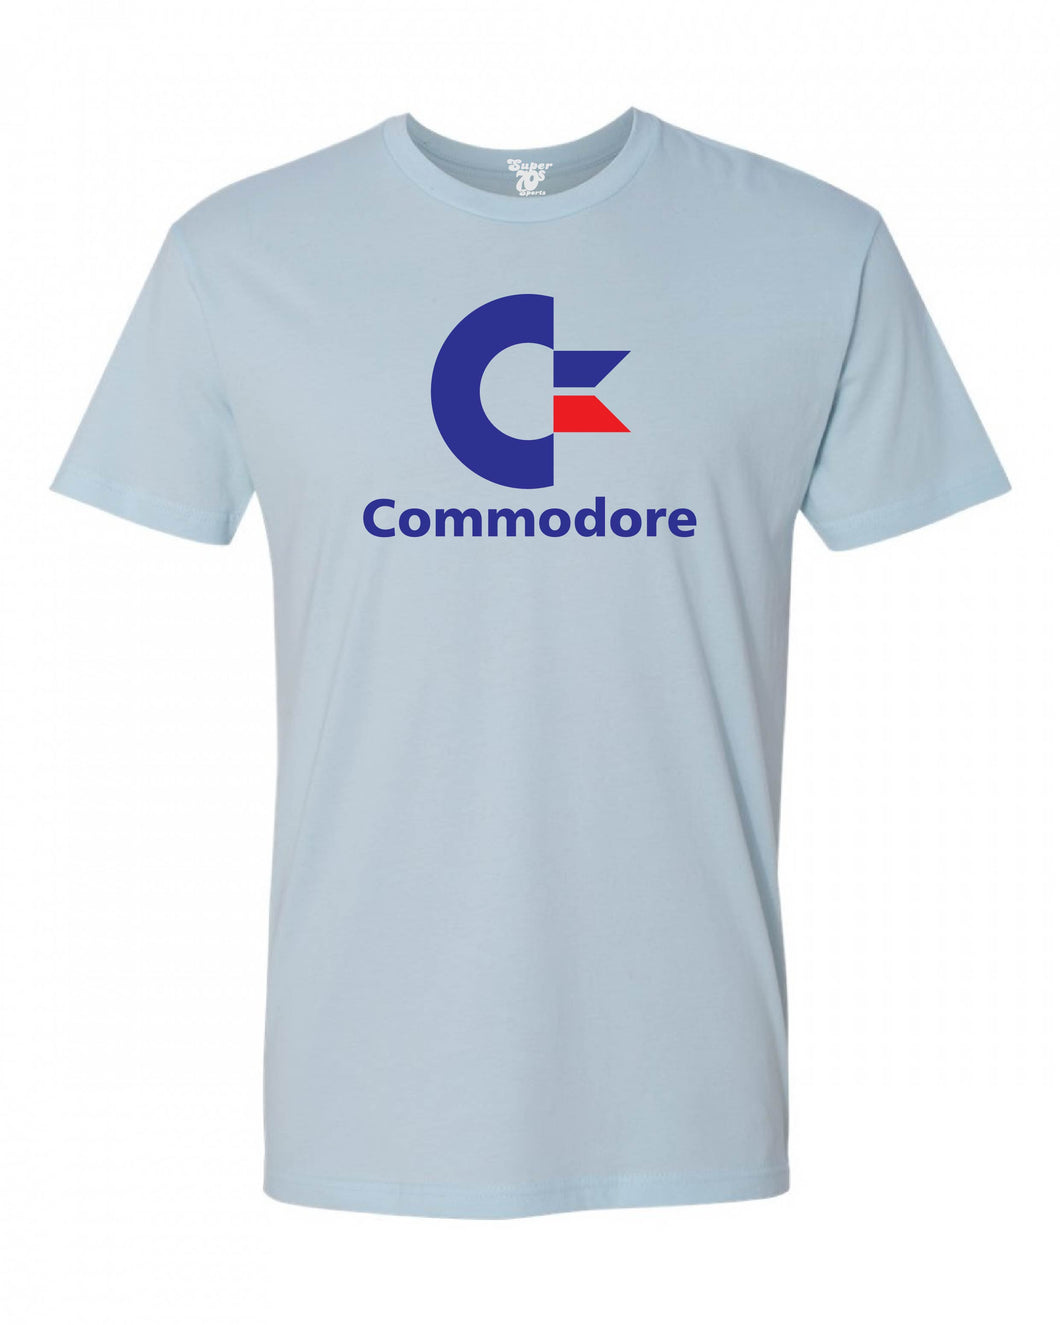 Commodore Tee